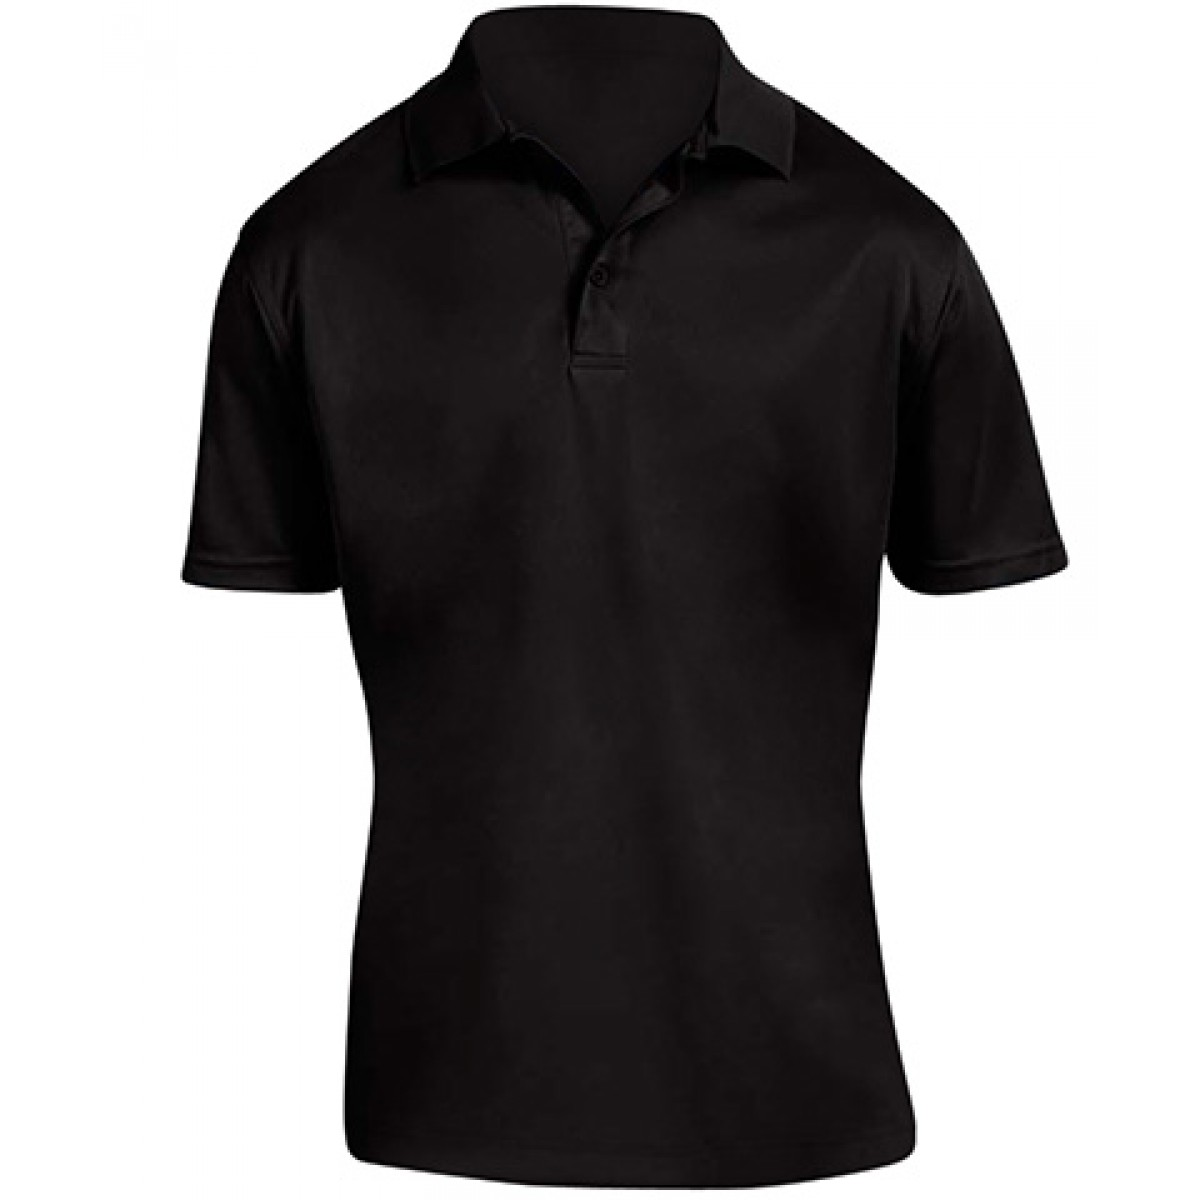 Men's 4 oz. Polytech Polo-Black-L